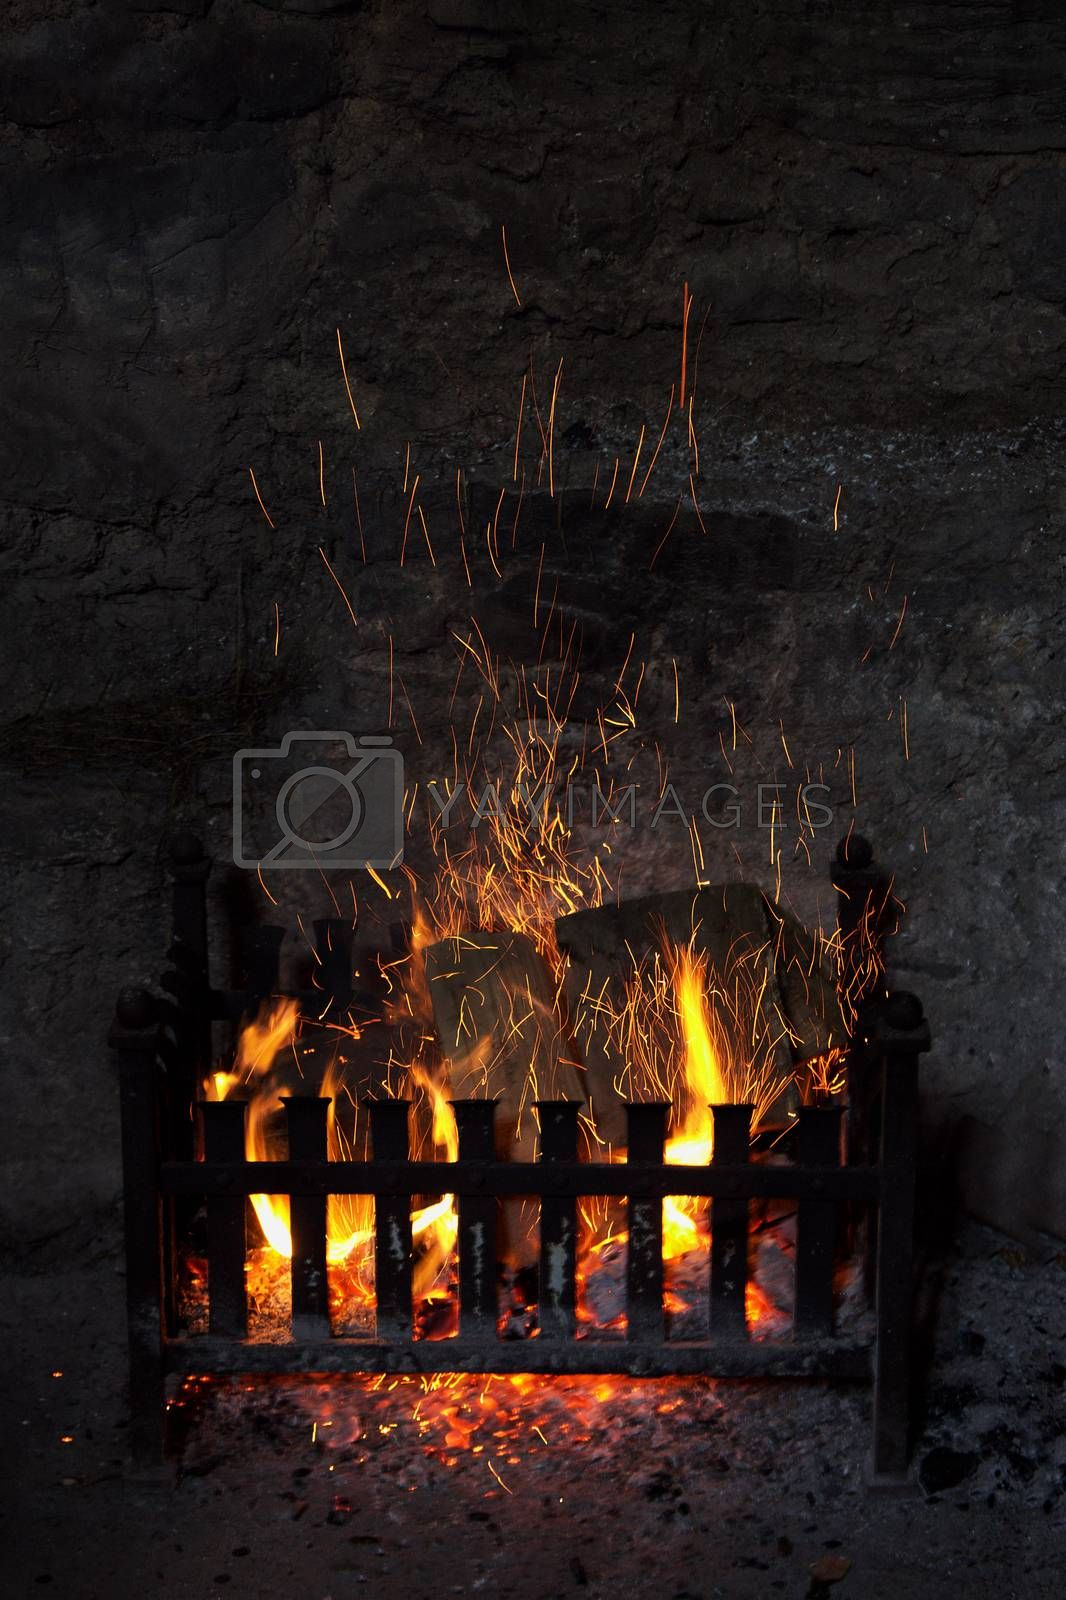 Old fashioned open log fireplace in with flames and sparks